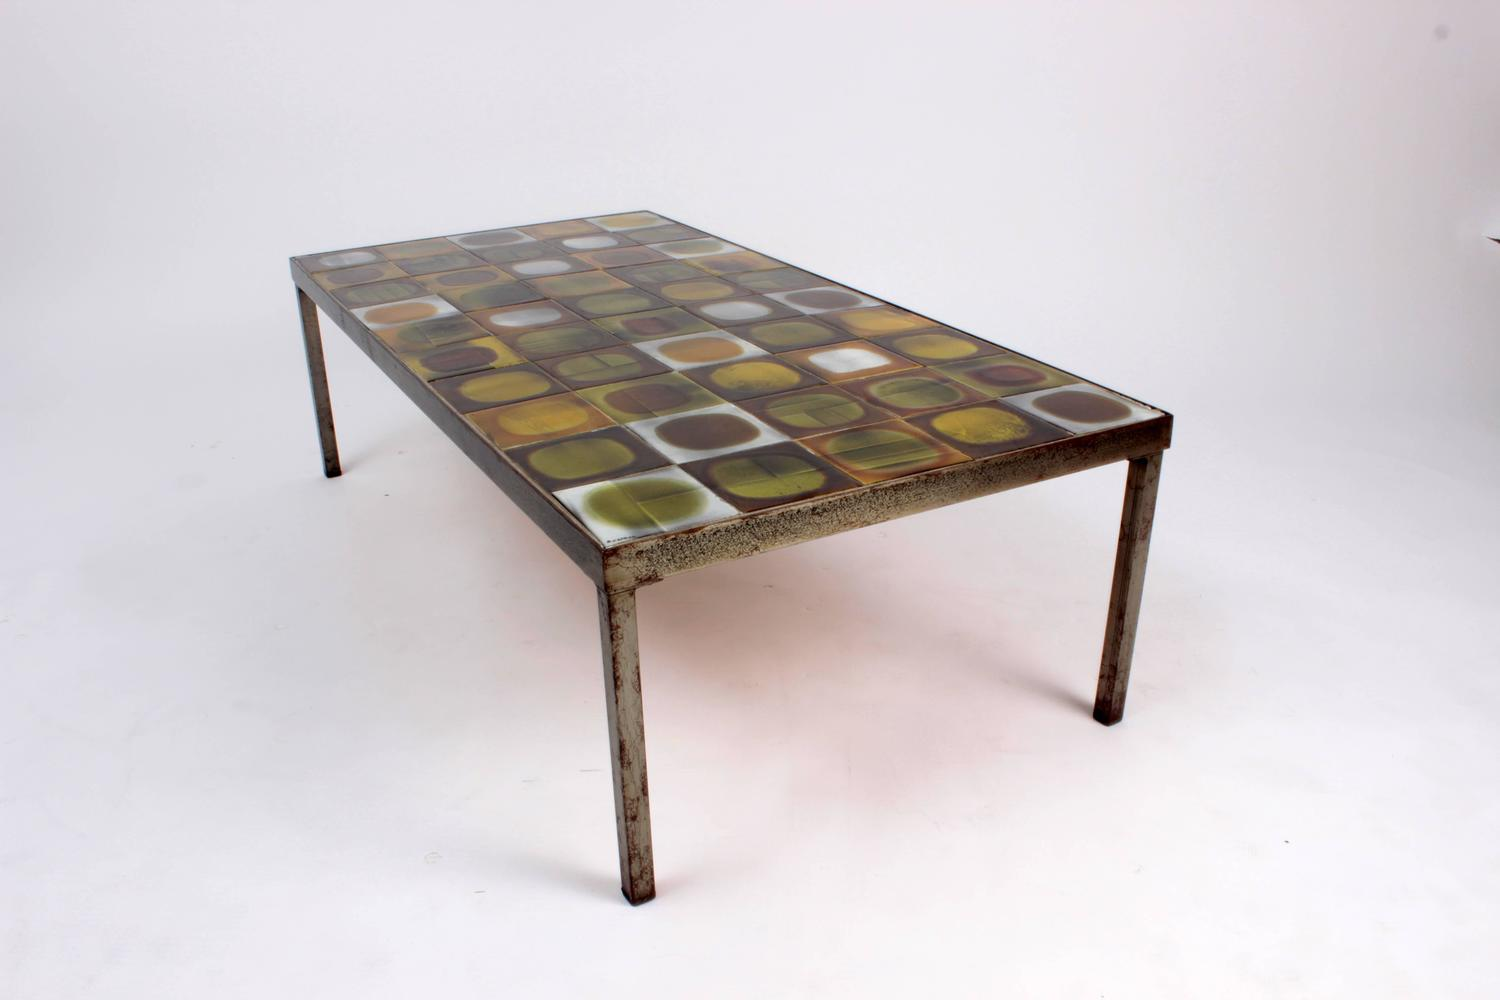 Coffee Table Planete by Roger Capron, Enameled Ceramic, France, c -> Table Basse Capron